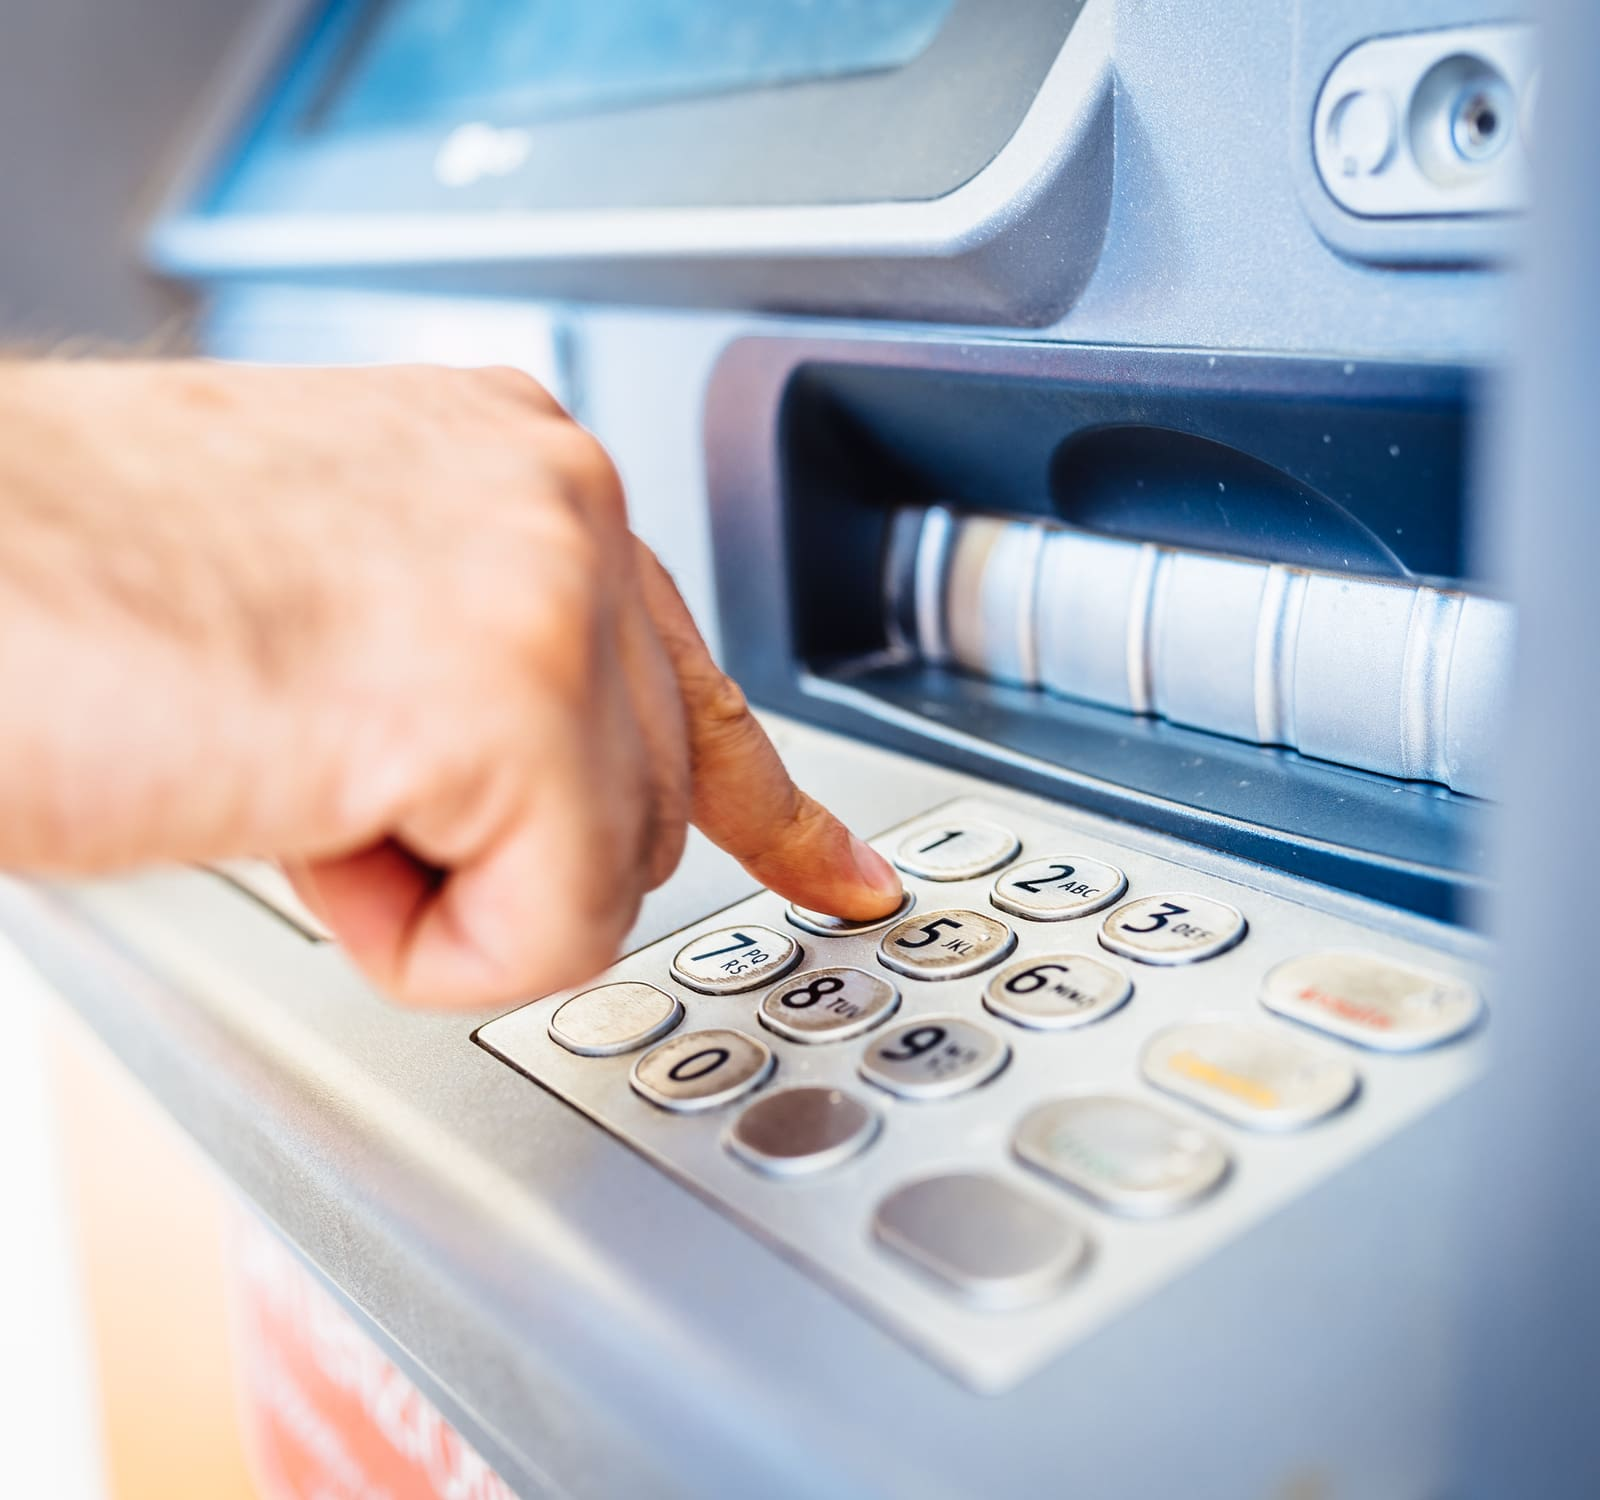 Bank ATM Fees: How Much Do Banks Charge and How Can I Avoid Them